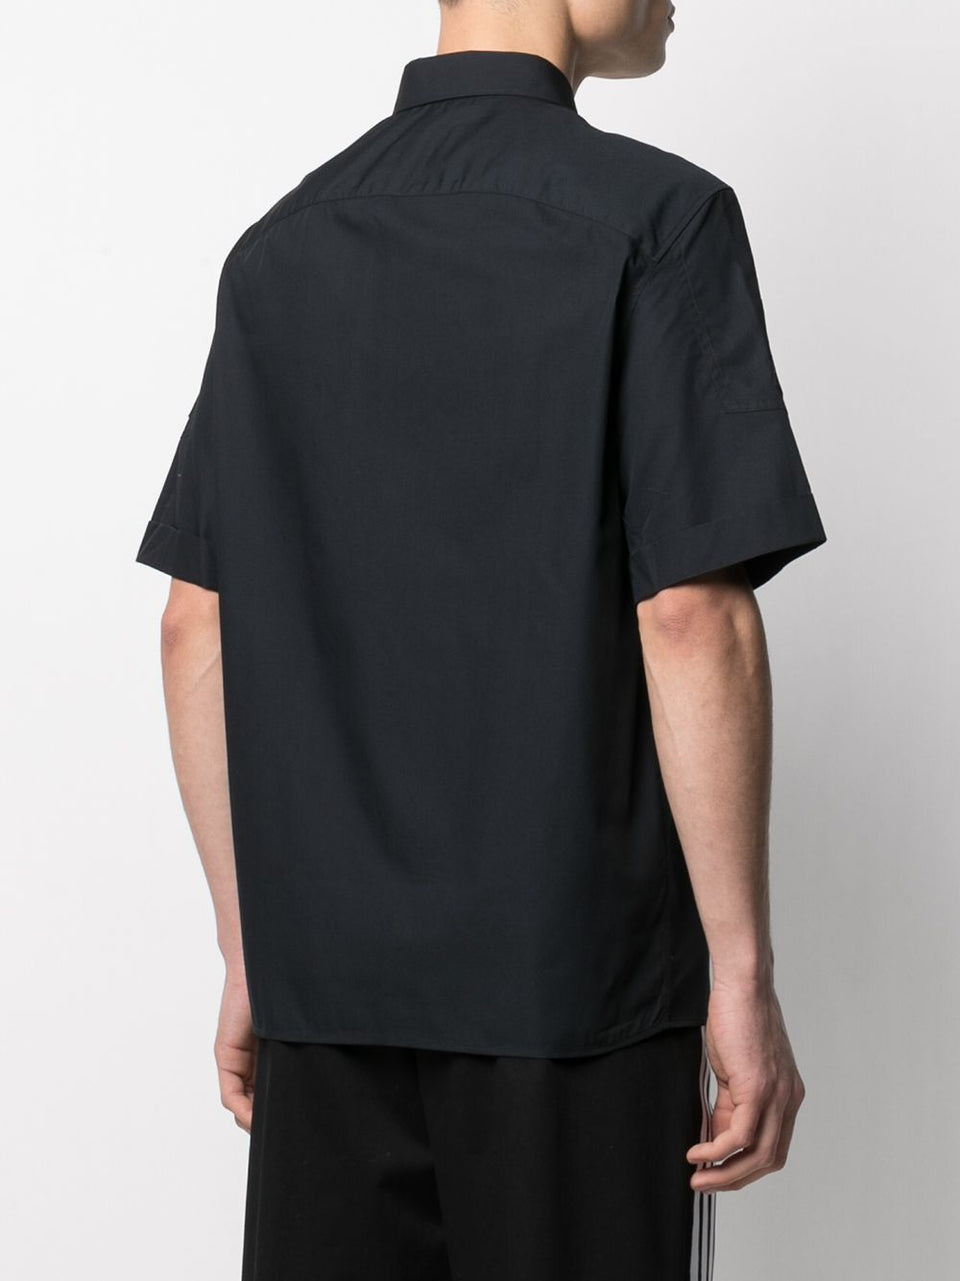 NEIL BARRETT SHIRT ZIP BLACK